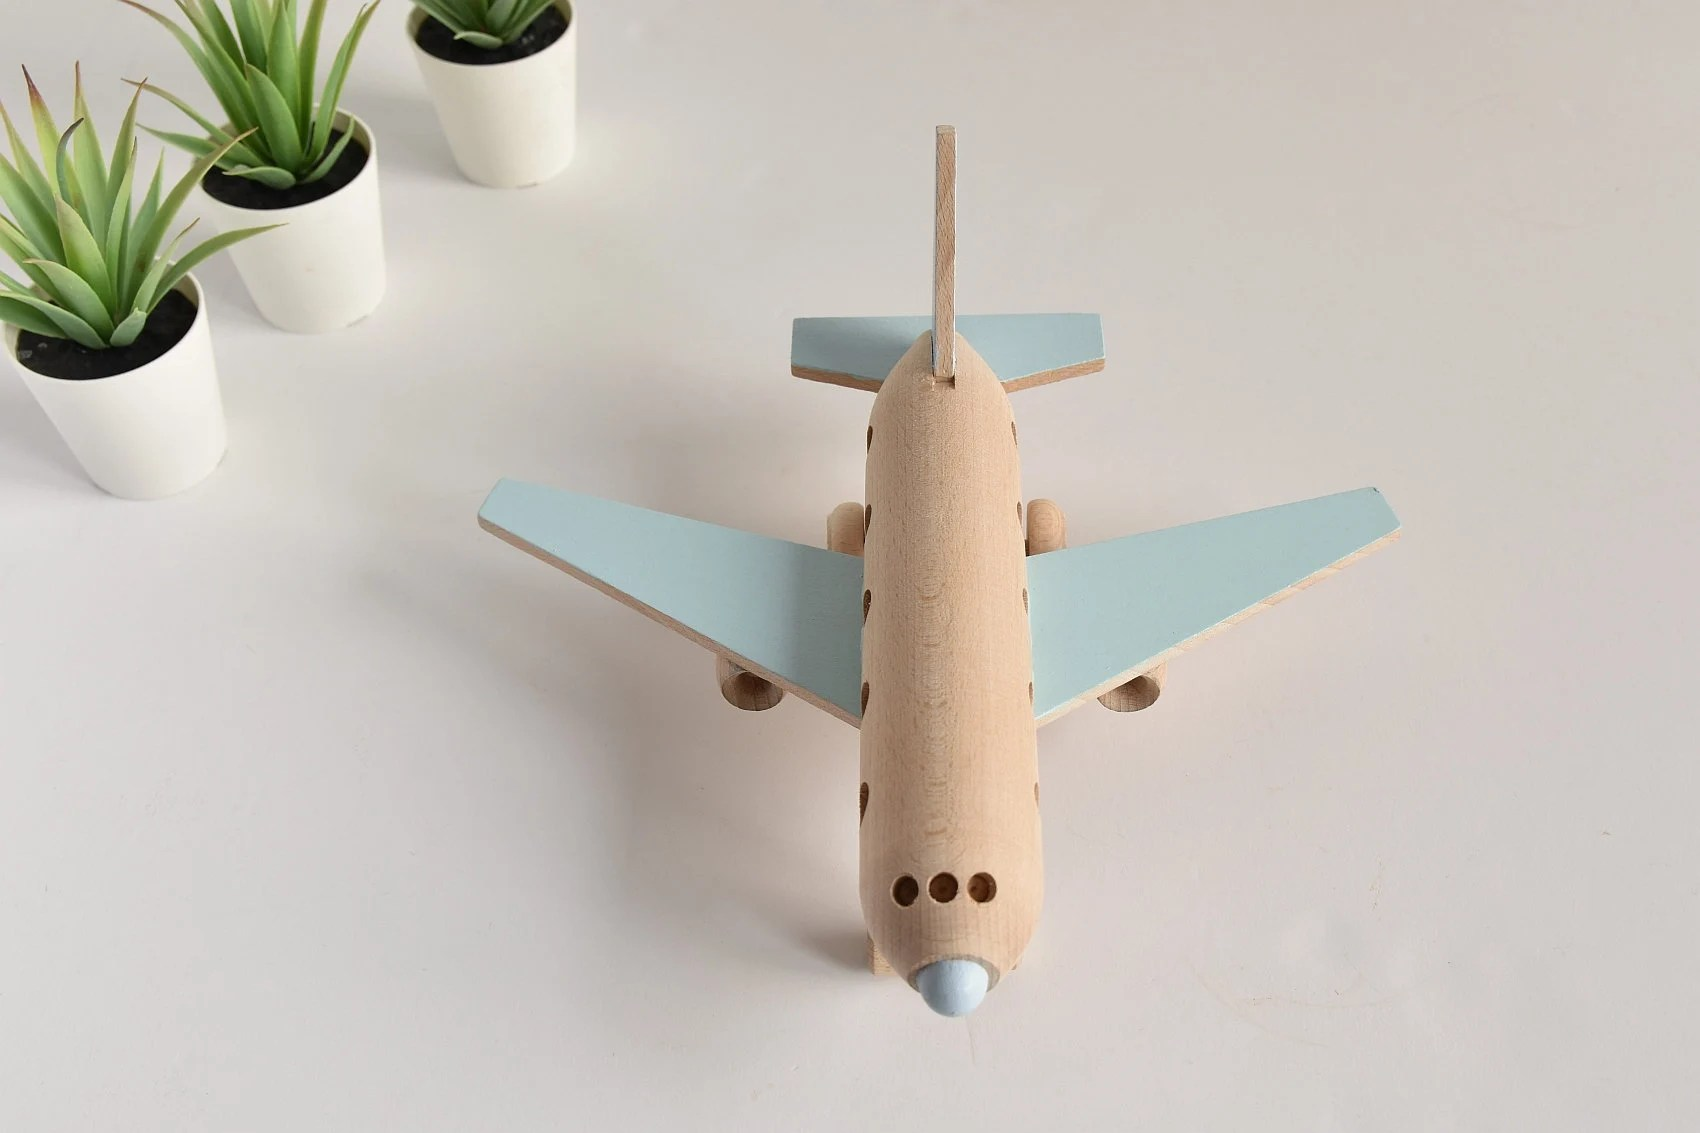 Wooden airplane  Wooden toys  Eco toy  Airplane decor  image 3